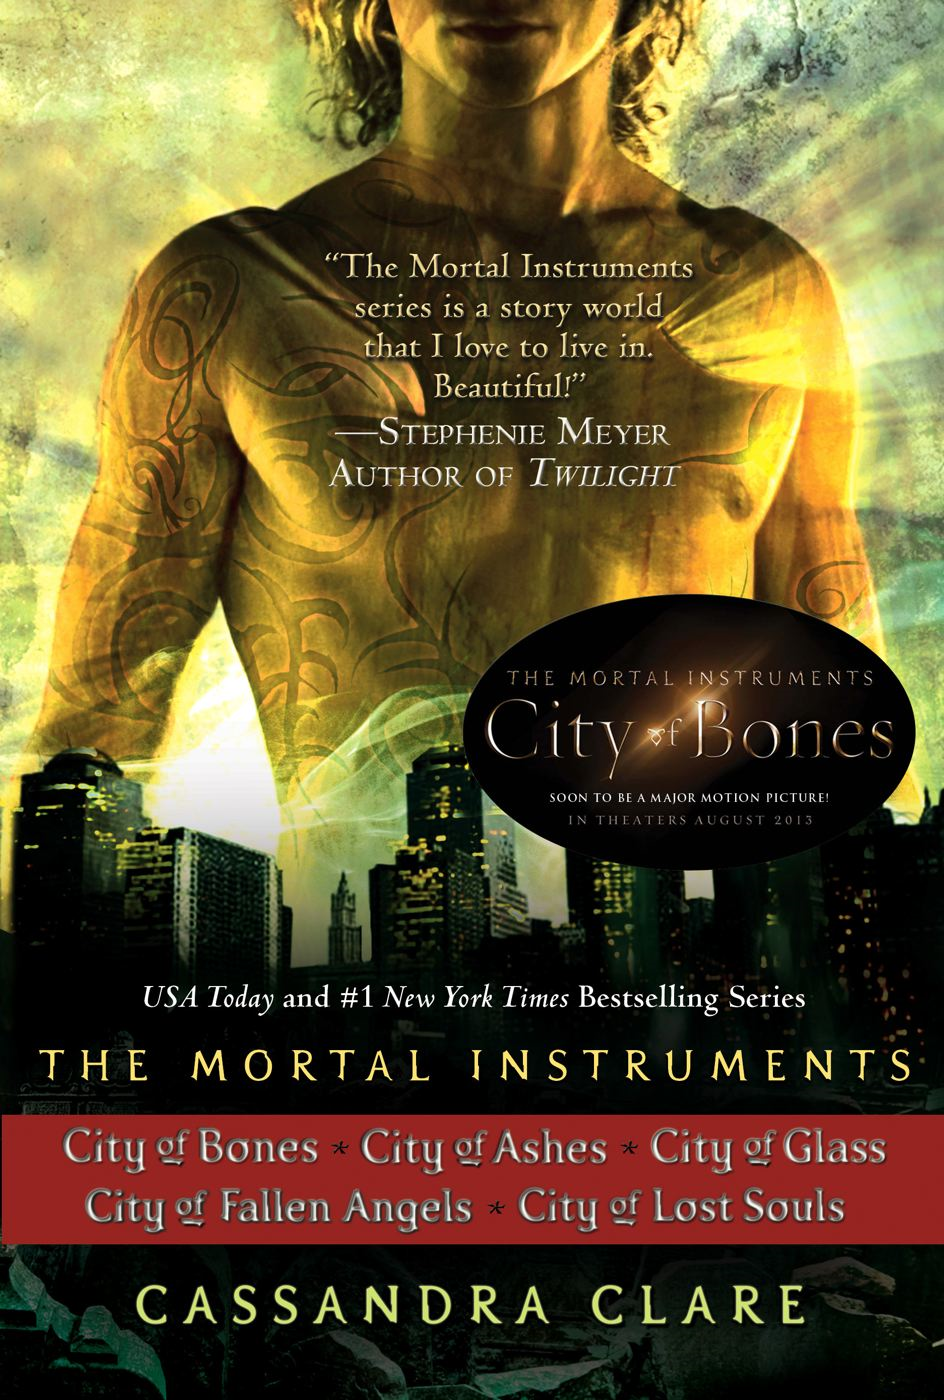 Cassandra Clare: The Mortal Instruments Series By: Cassandra Clare